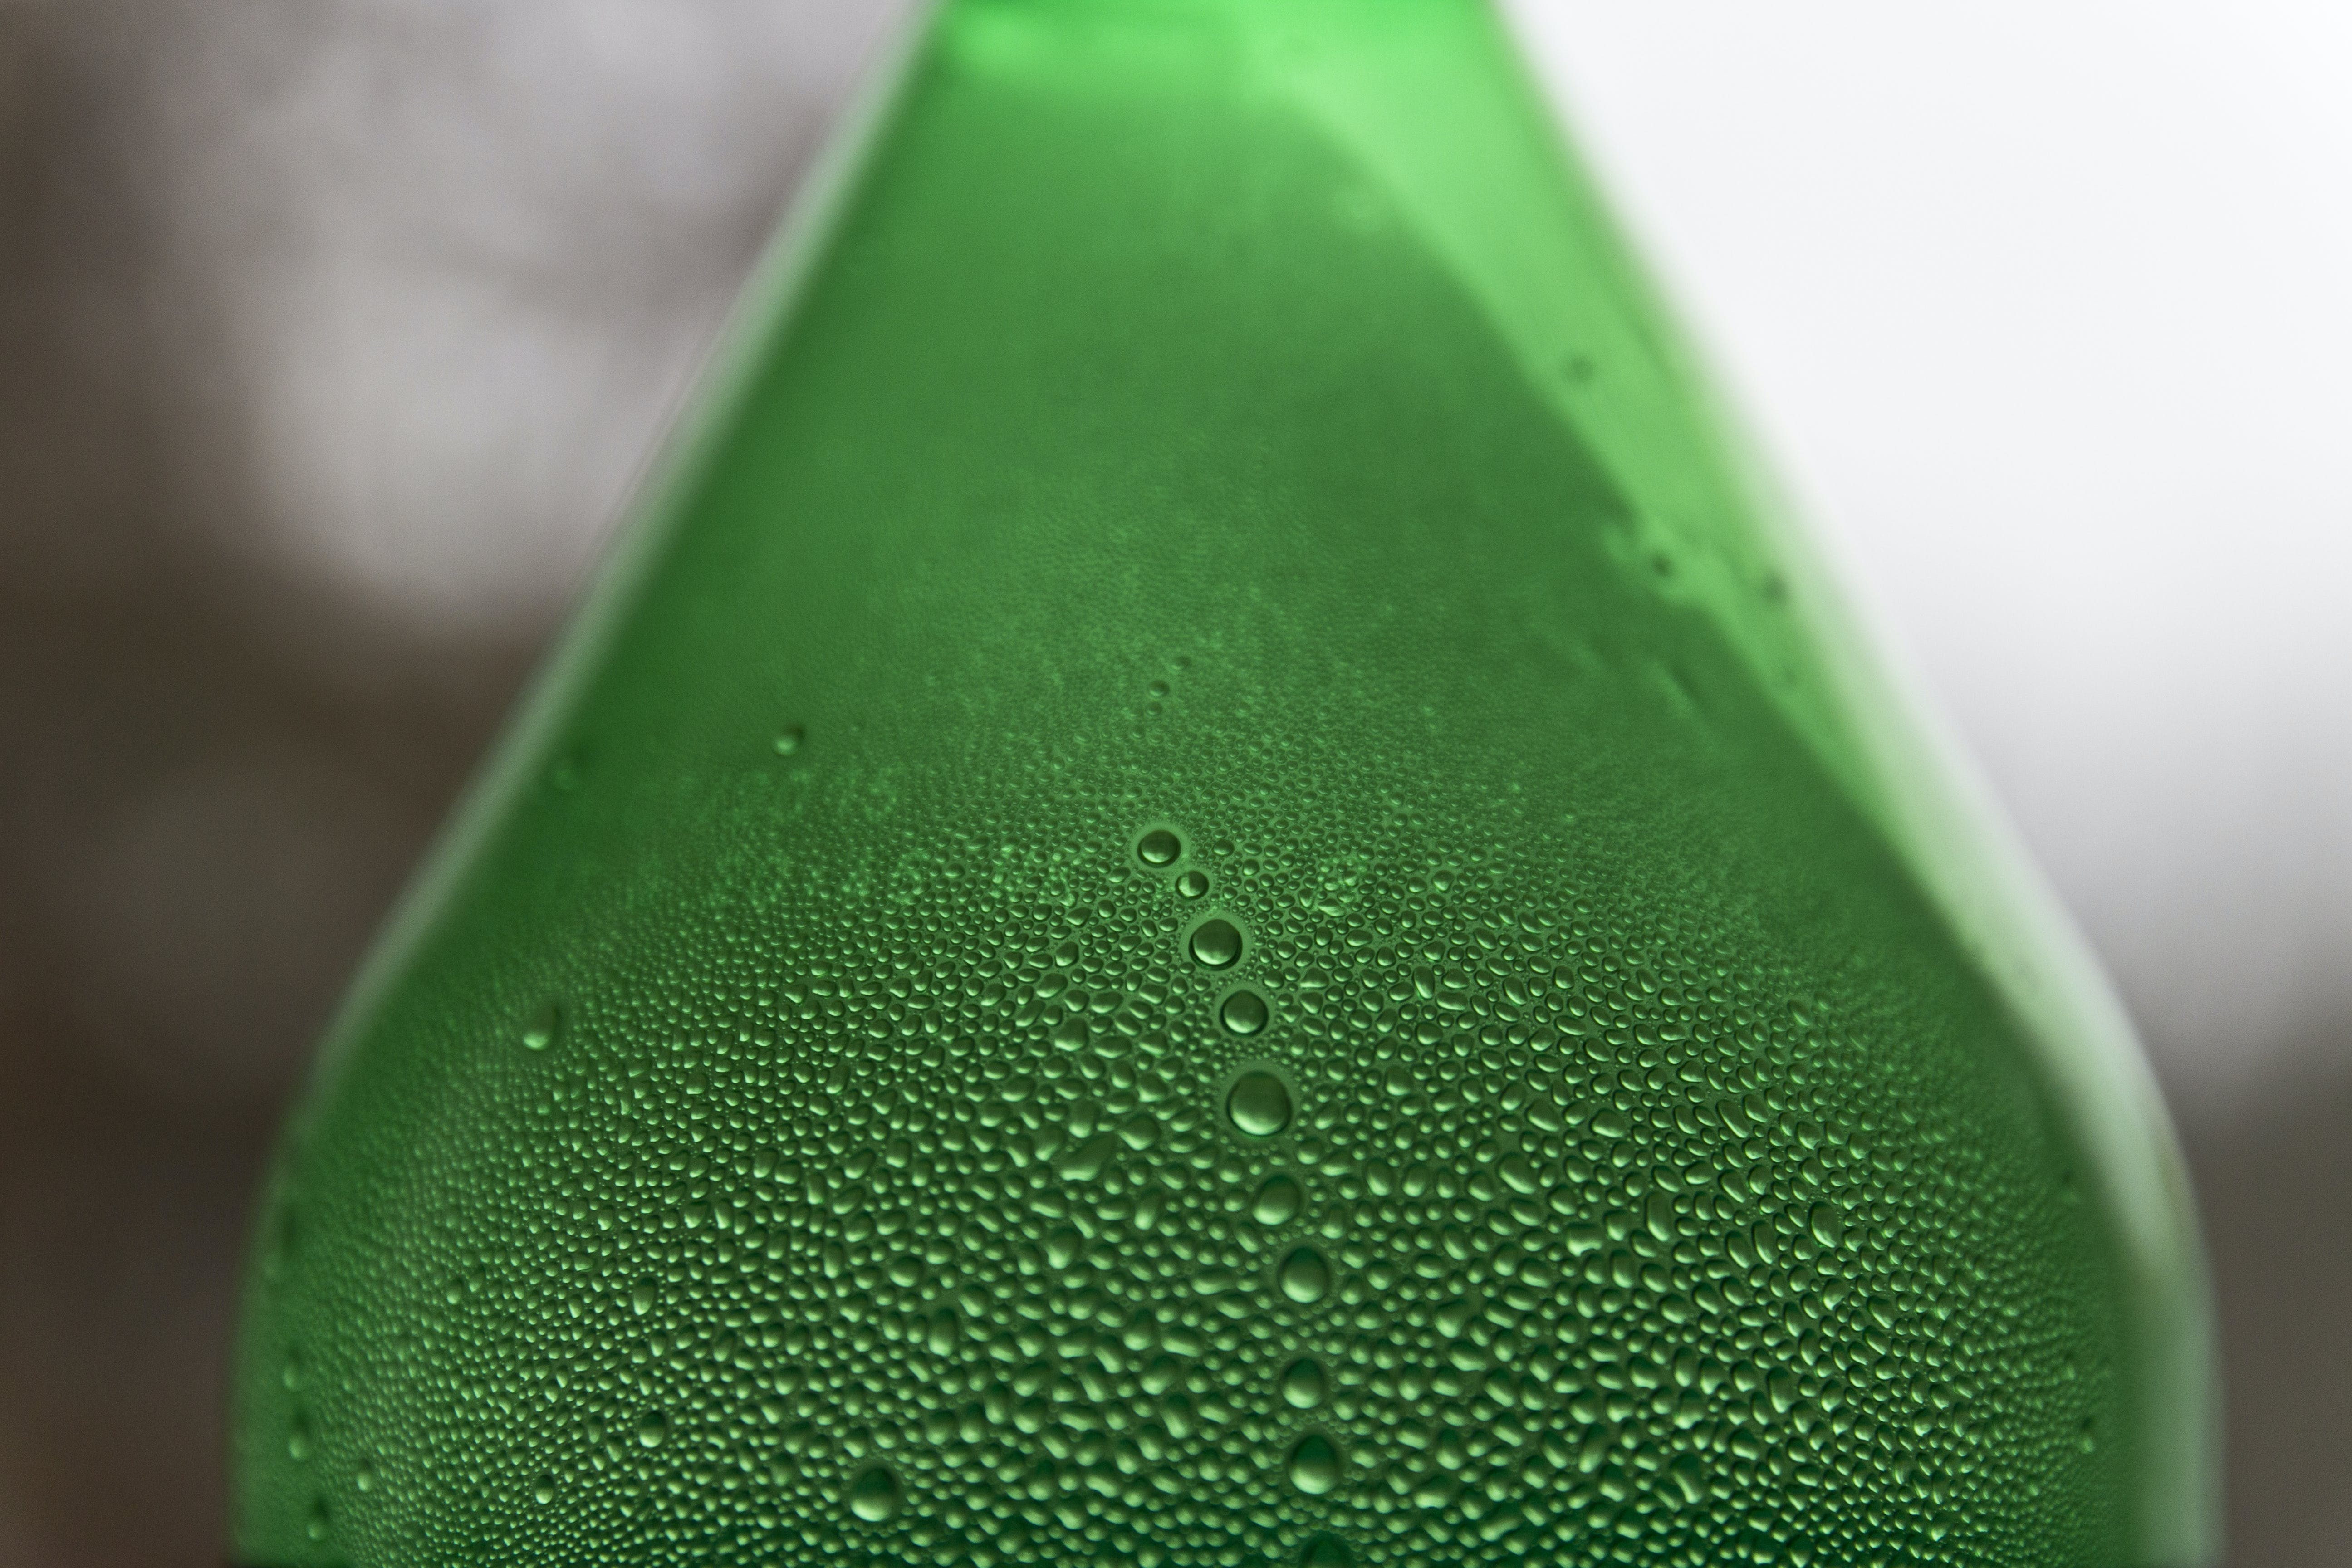 Free stock photo of green, drops, bottle